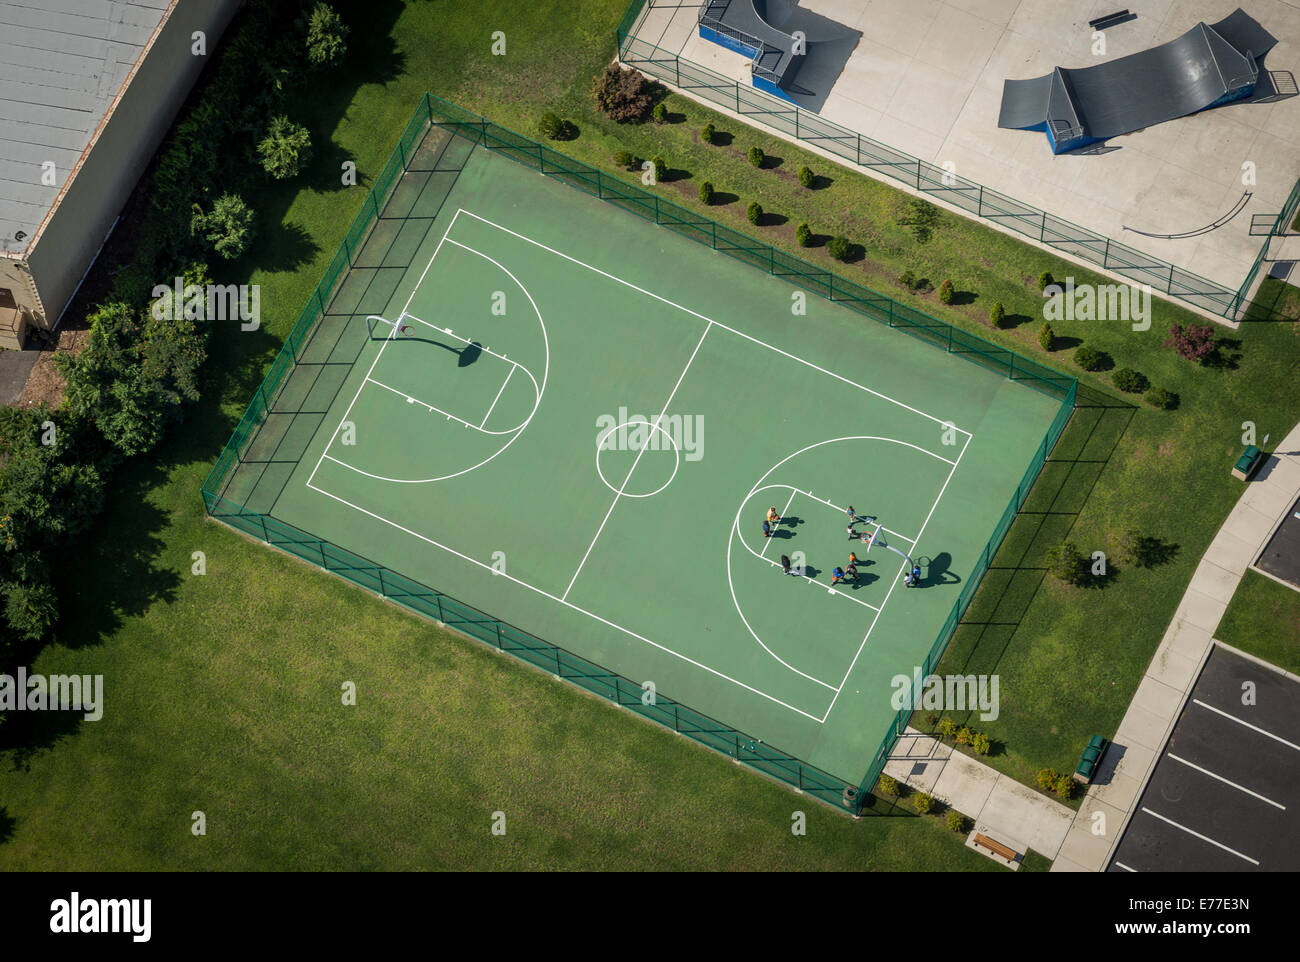 Outdoor Basketball Court Aerial View